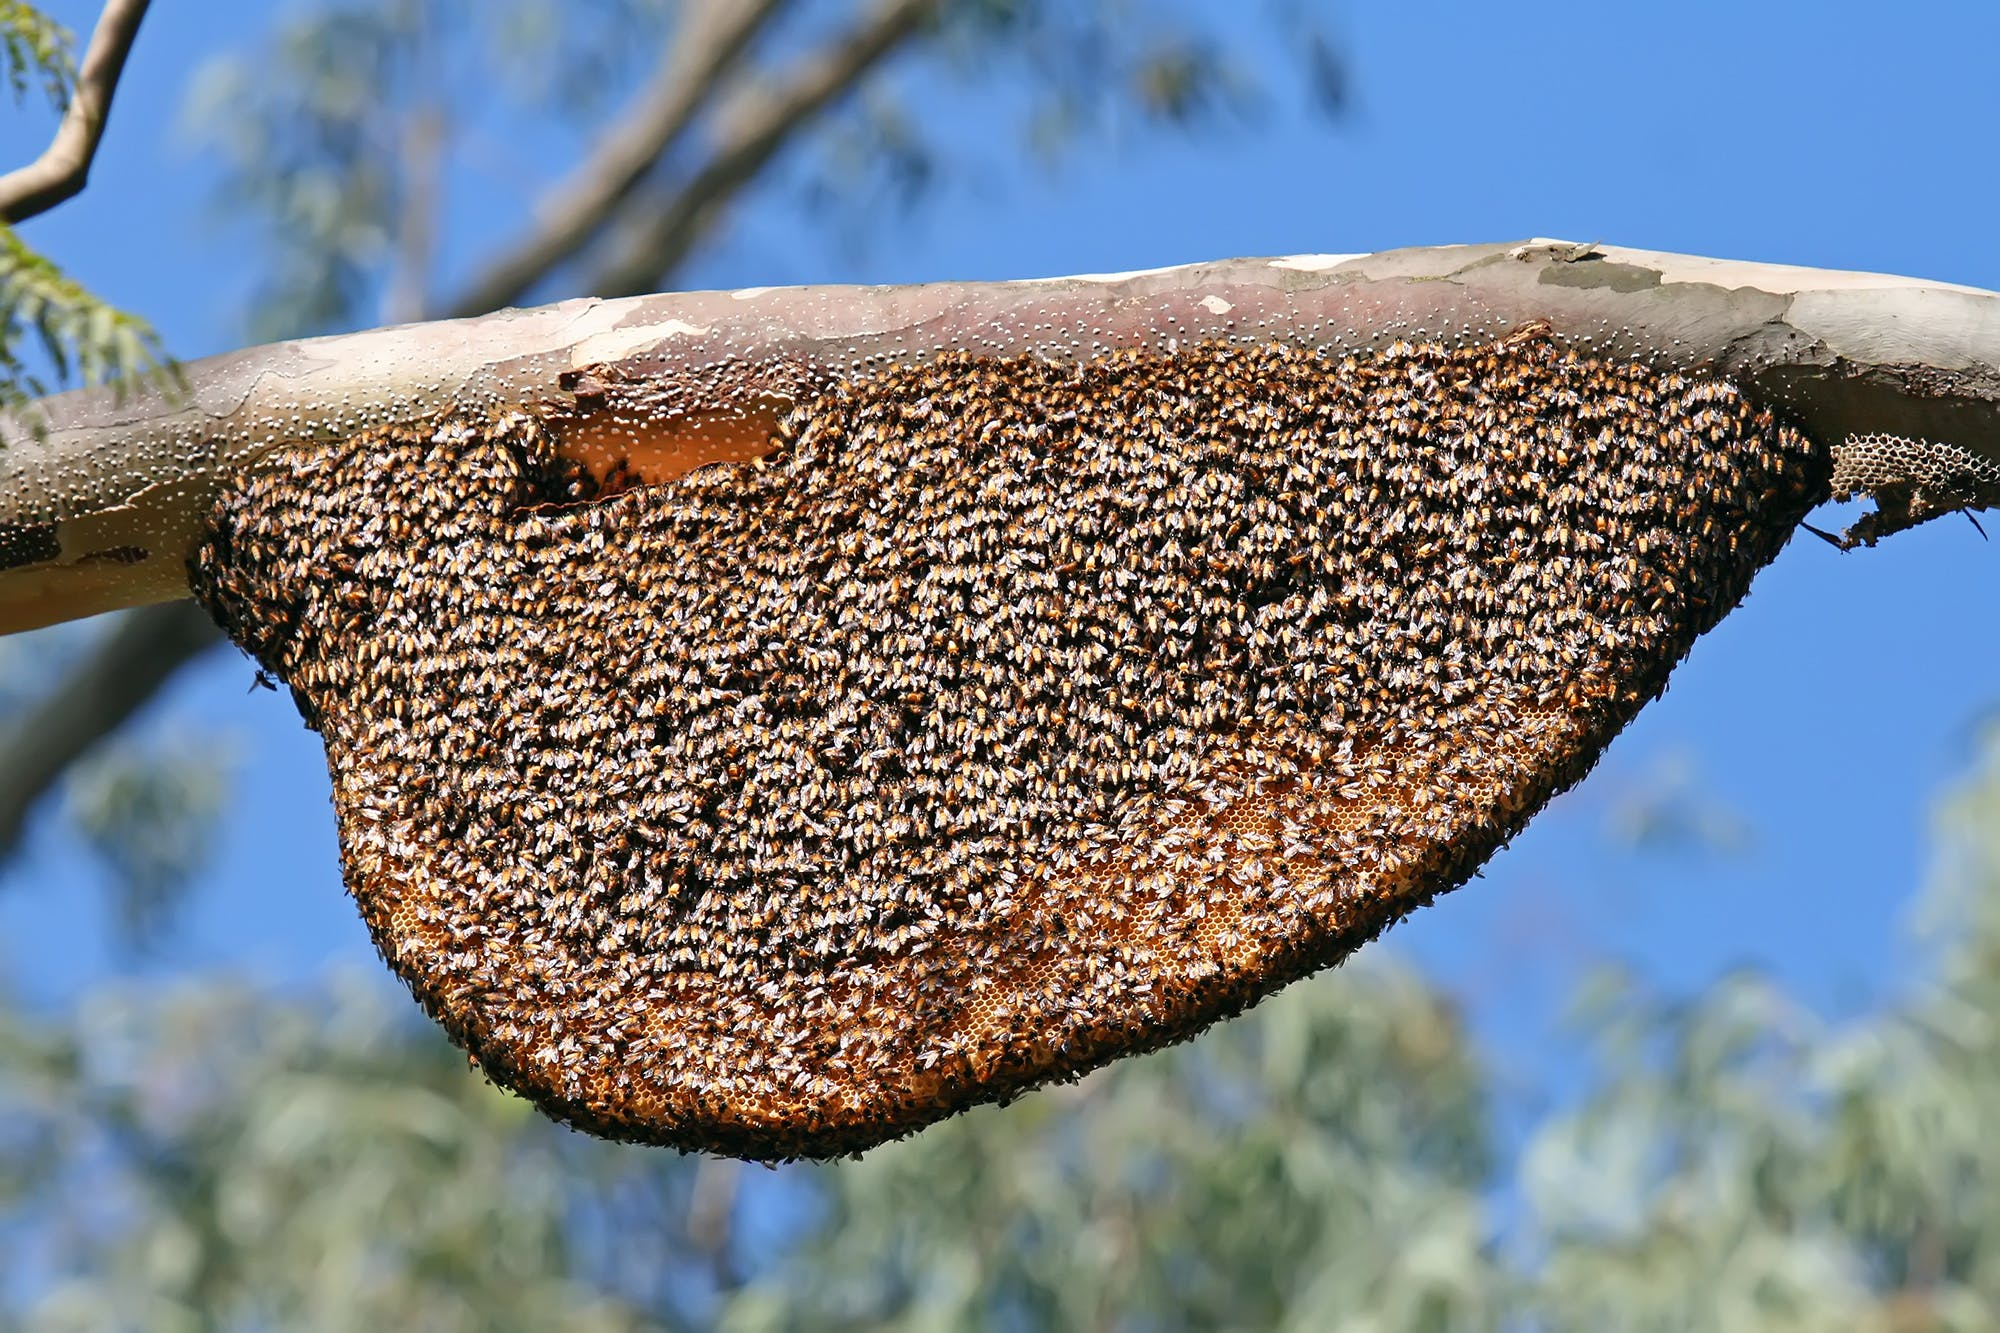 A colony of Apis dorsata or the rock bee, a native honey bee found in India. Bees are important pollinators that ensure food security and sustaining biodiversity.